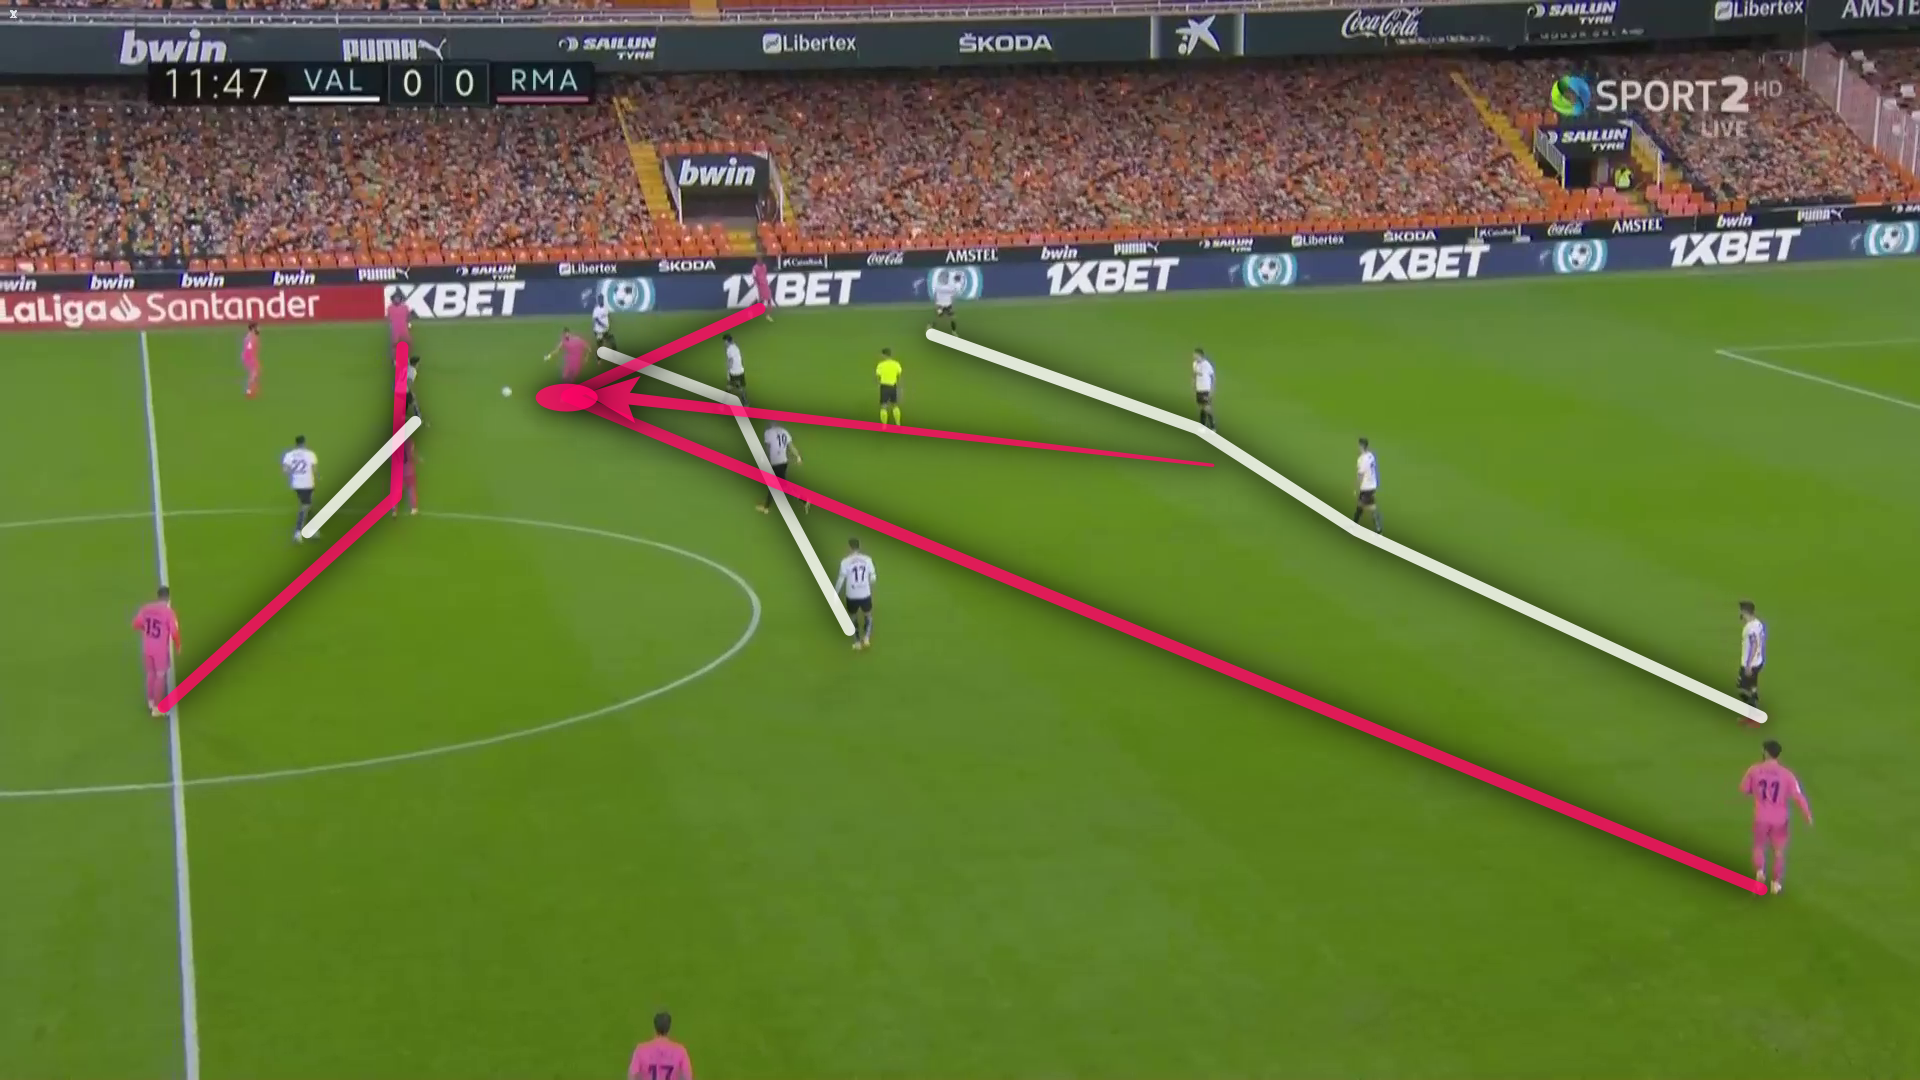 La Liga 2020/21: Valencia vs Real Madrid - tactical analysis tactics